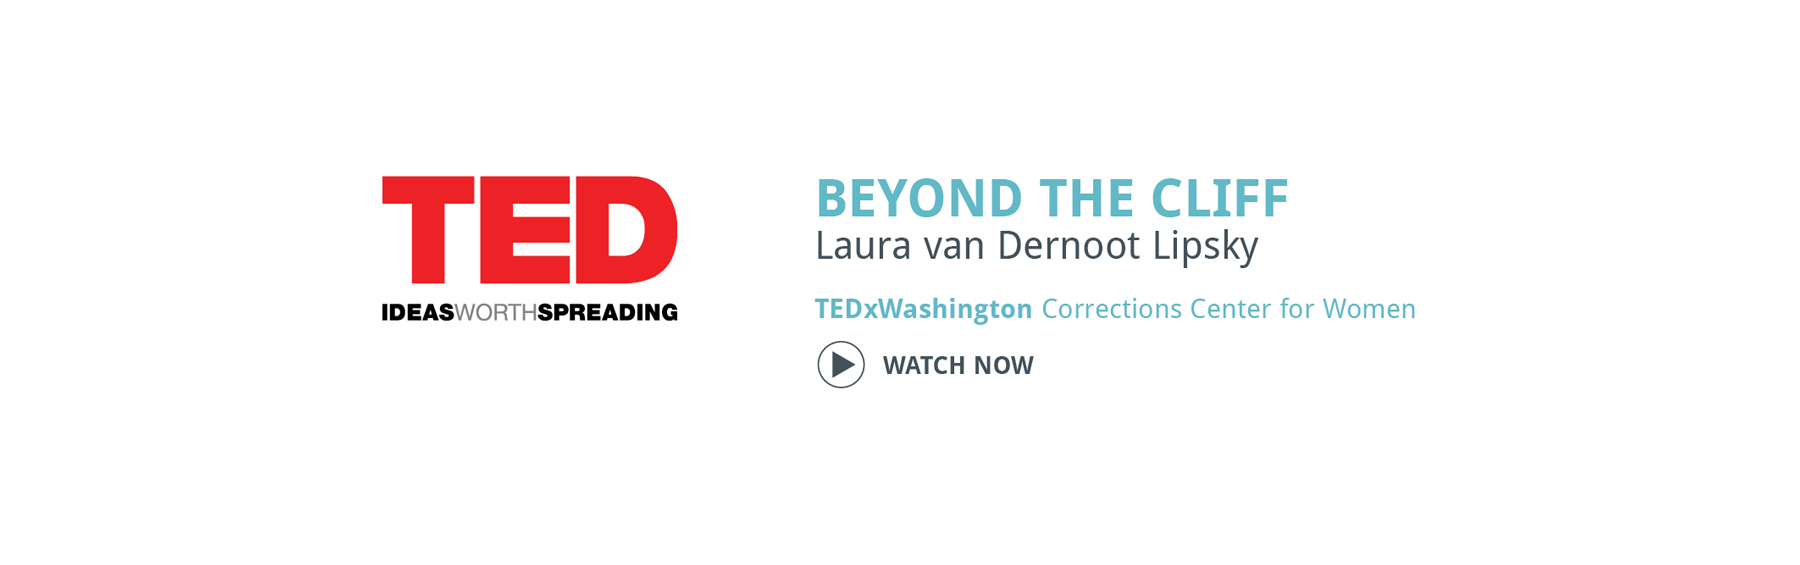 "Watch Now - ""Beyond the Cliff"" TEDxWashington Corrections Center for Women talk by Laura van Dernoot Lipsky"